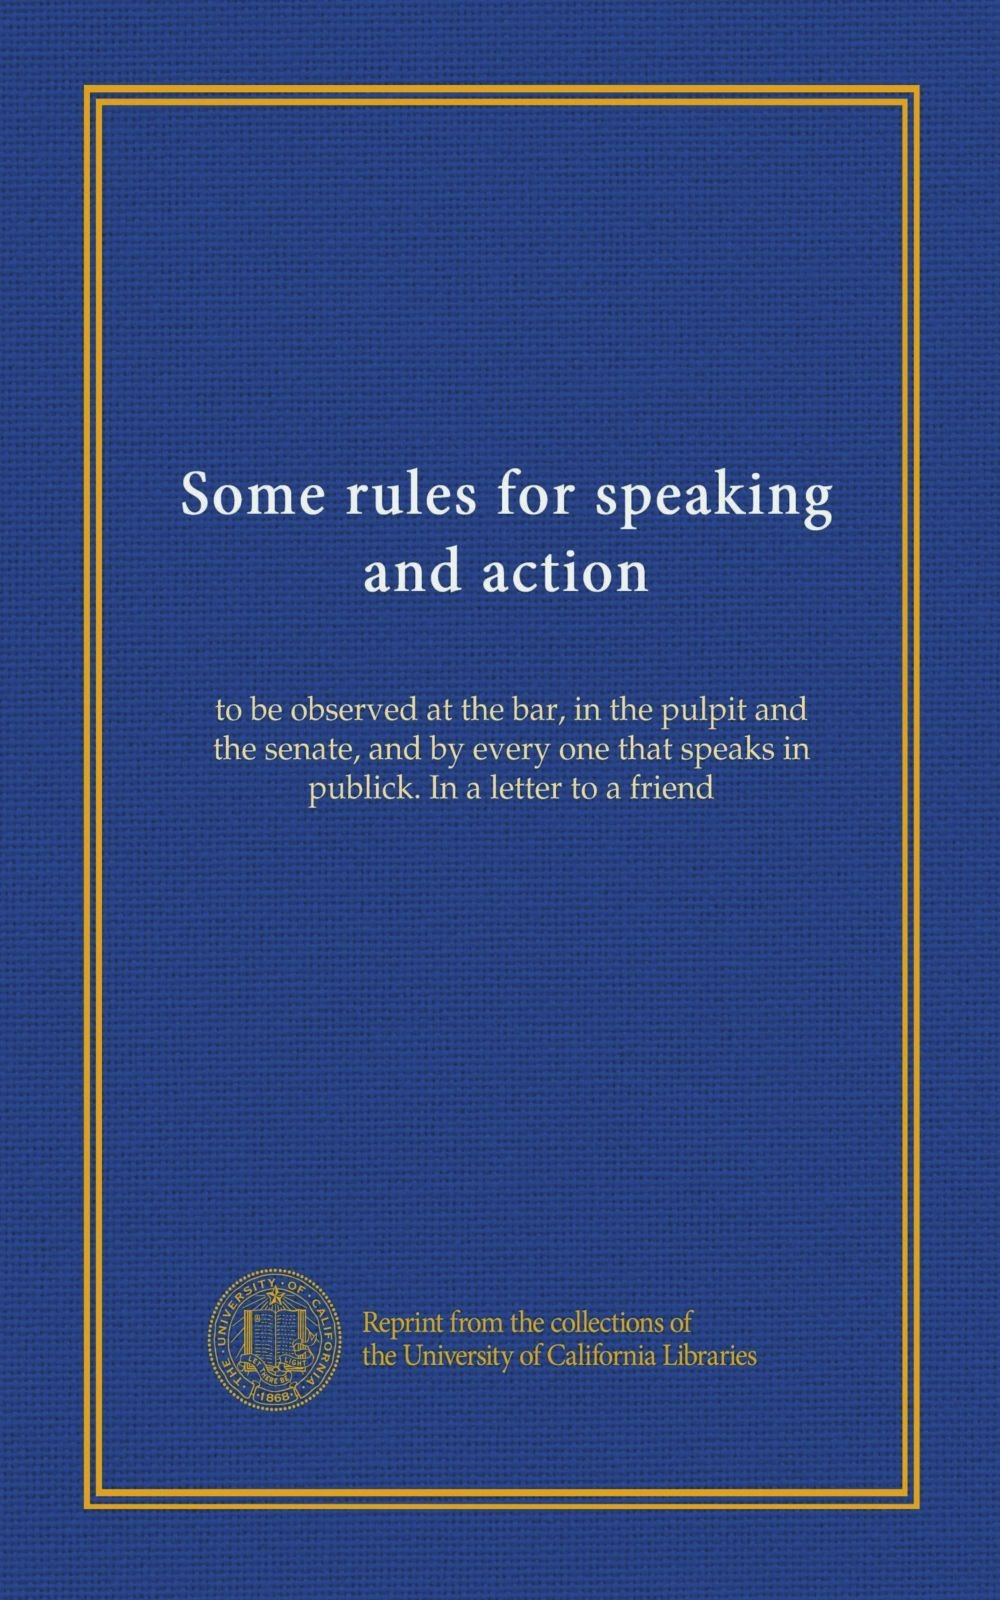 Read Online Some rules for speaking and action: to be observed at the bar, in the pulpit and the senate, and by every one that speaks in publick. In a letter to a friend pdf